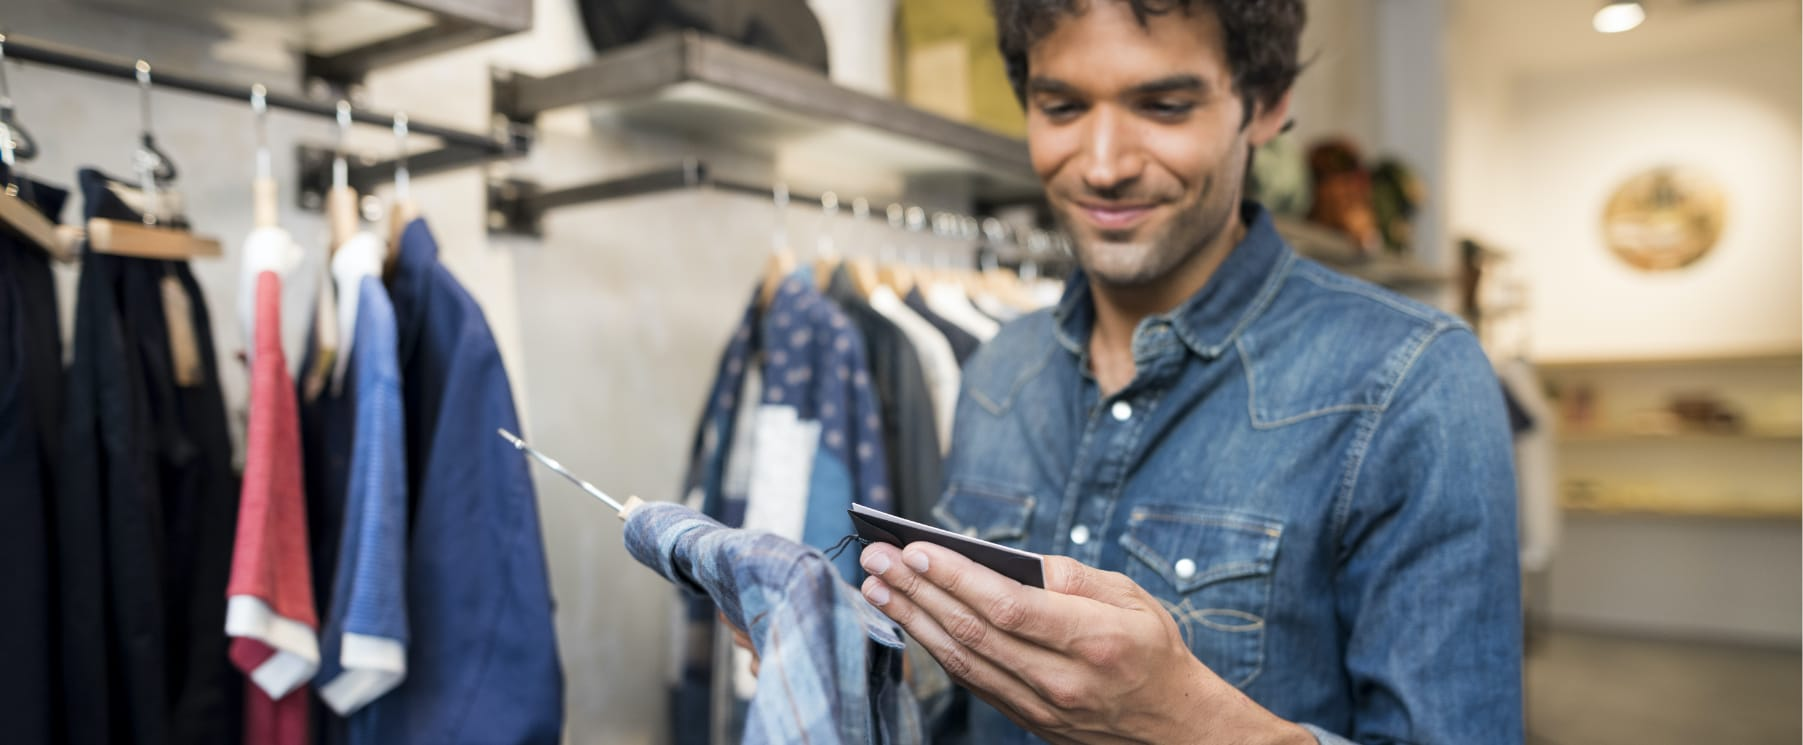 Increasing prices doesn't have to mean losing customers